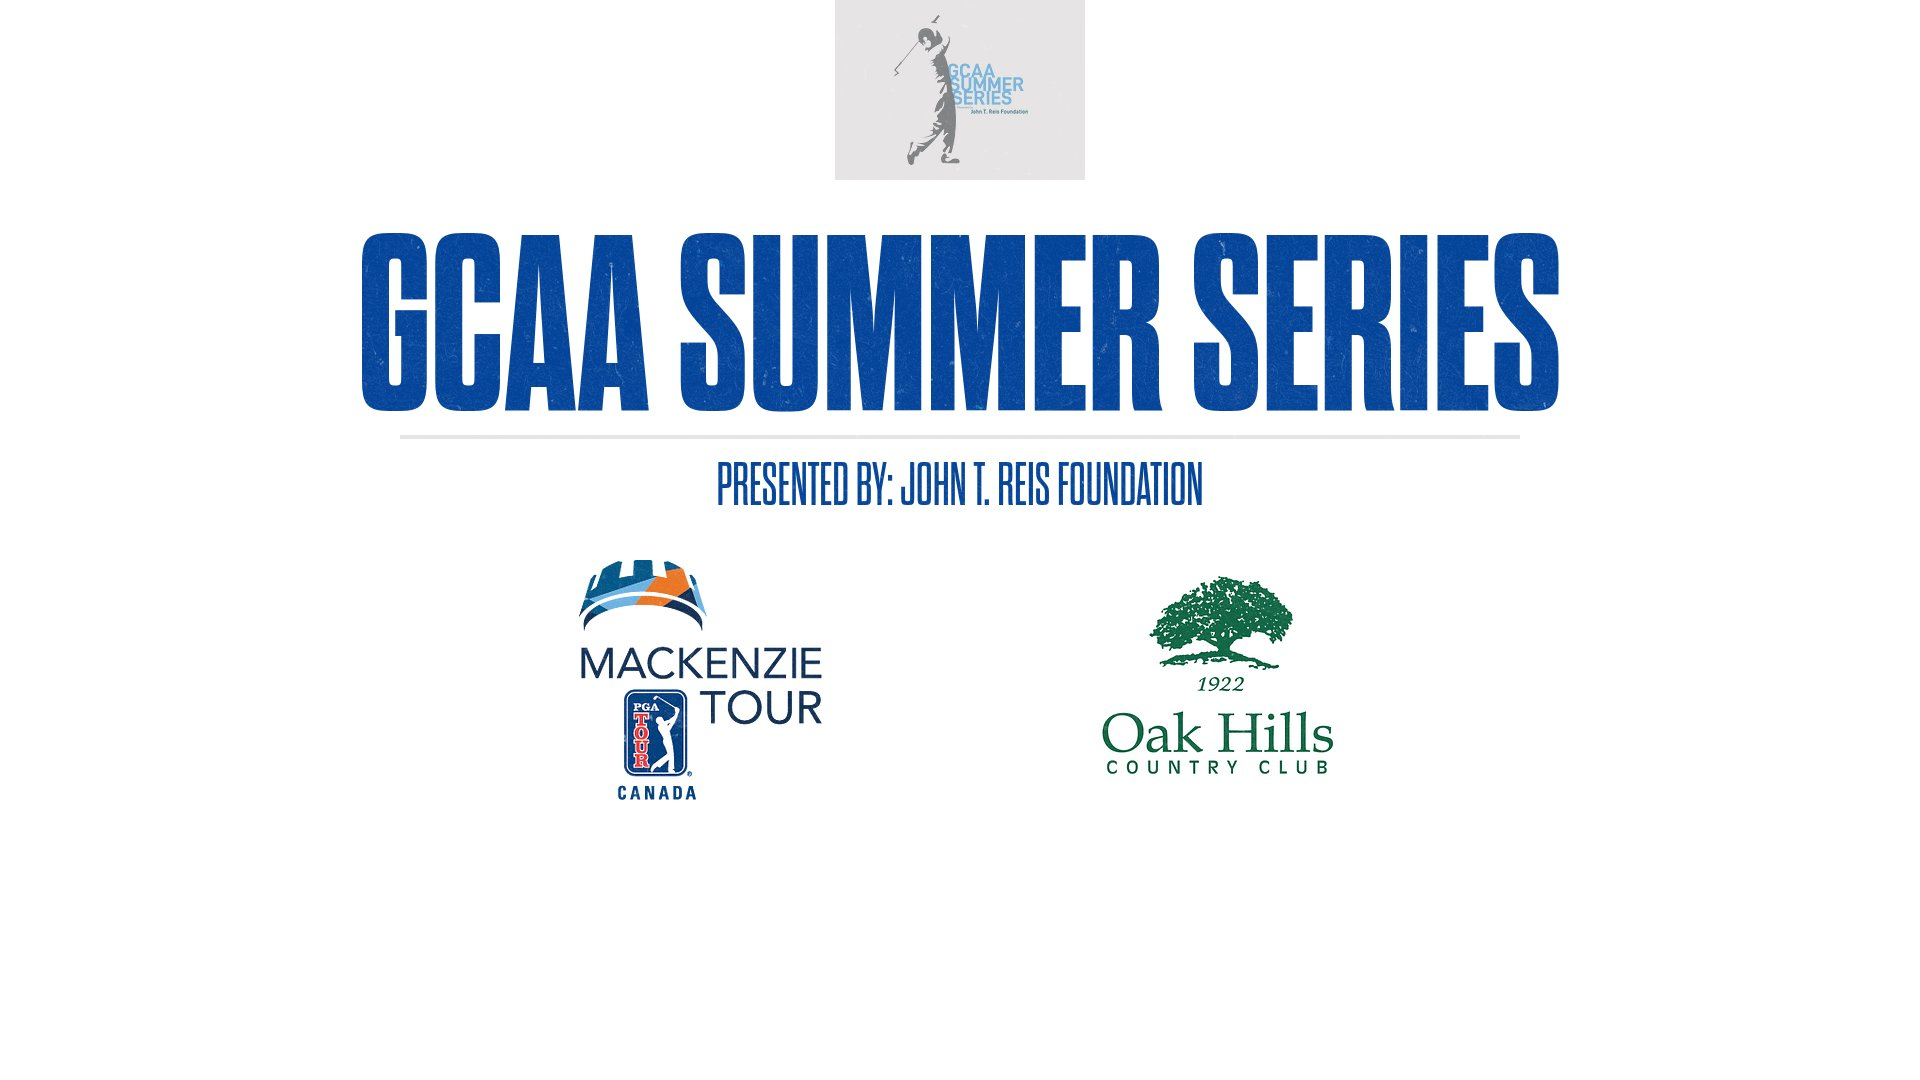 GCAA Announces Summer Series Championship Site, Partnership with PGA TOUR's International Tours